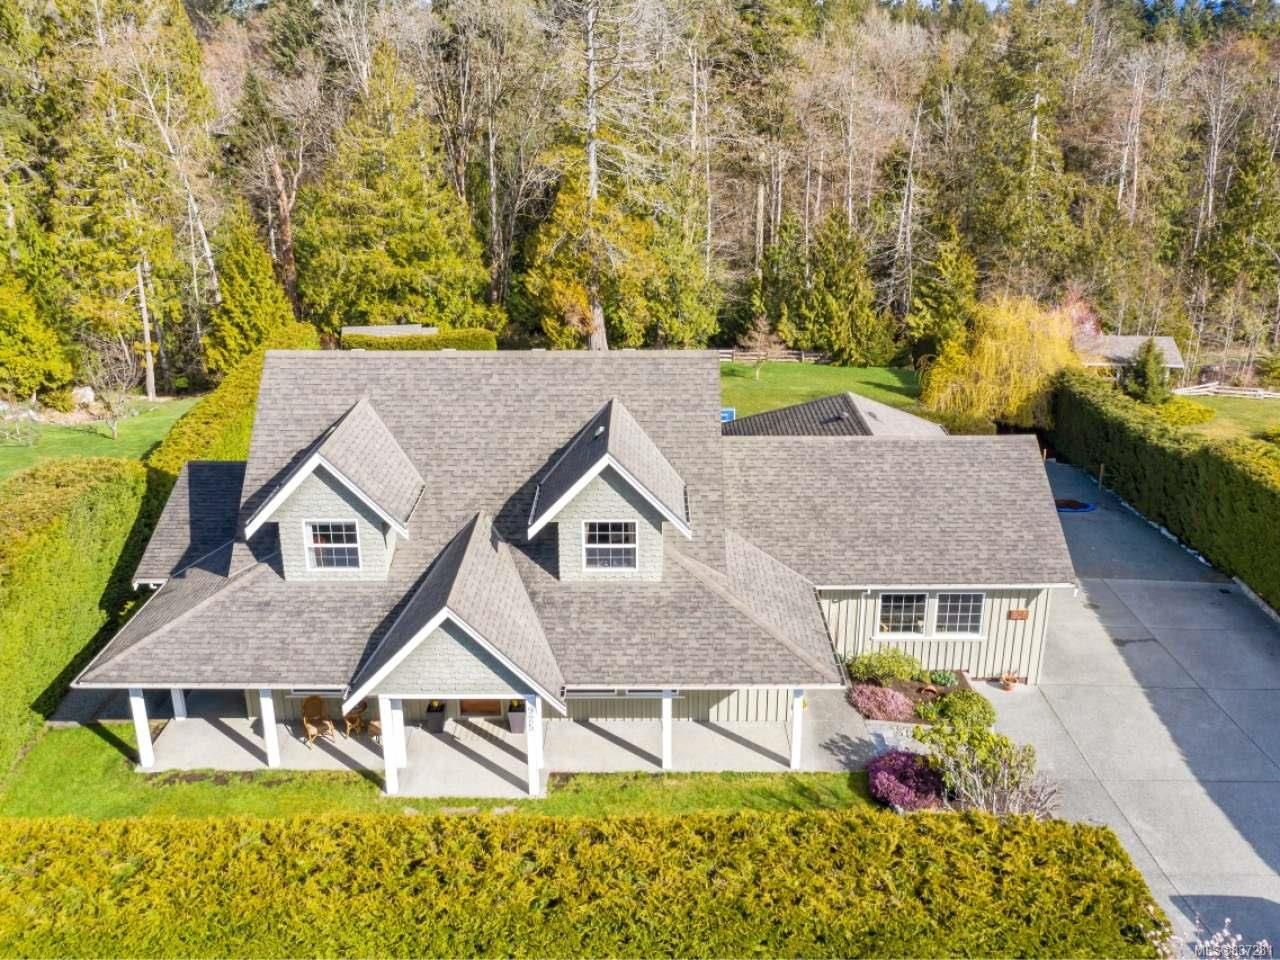 Photo 35: Photos: 925 Lilmac Rd in MILL BAY: ML Mill Bay House for sale (Malahat & Area)  : MLS®# 837281